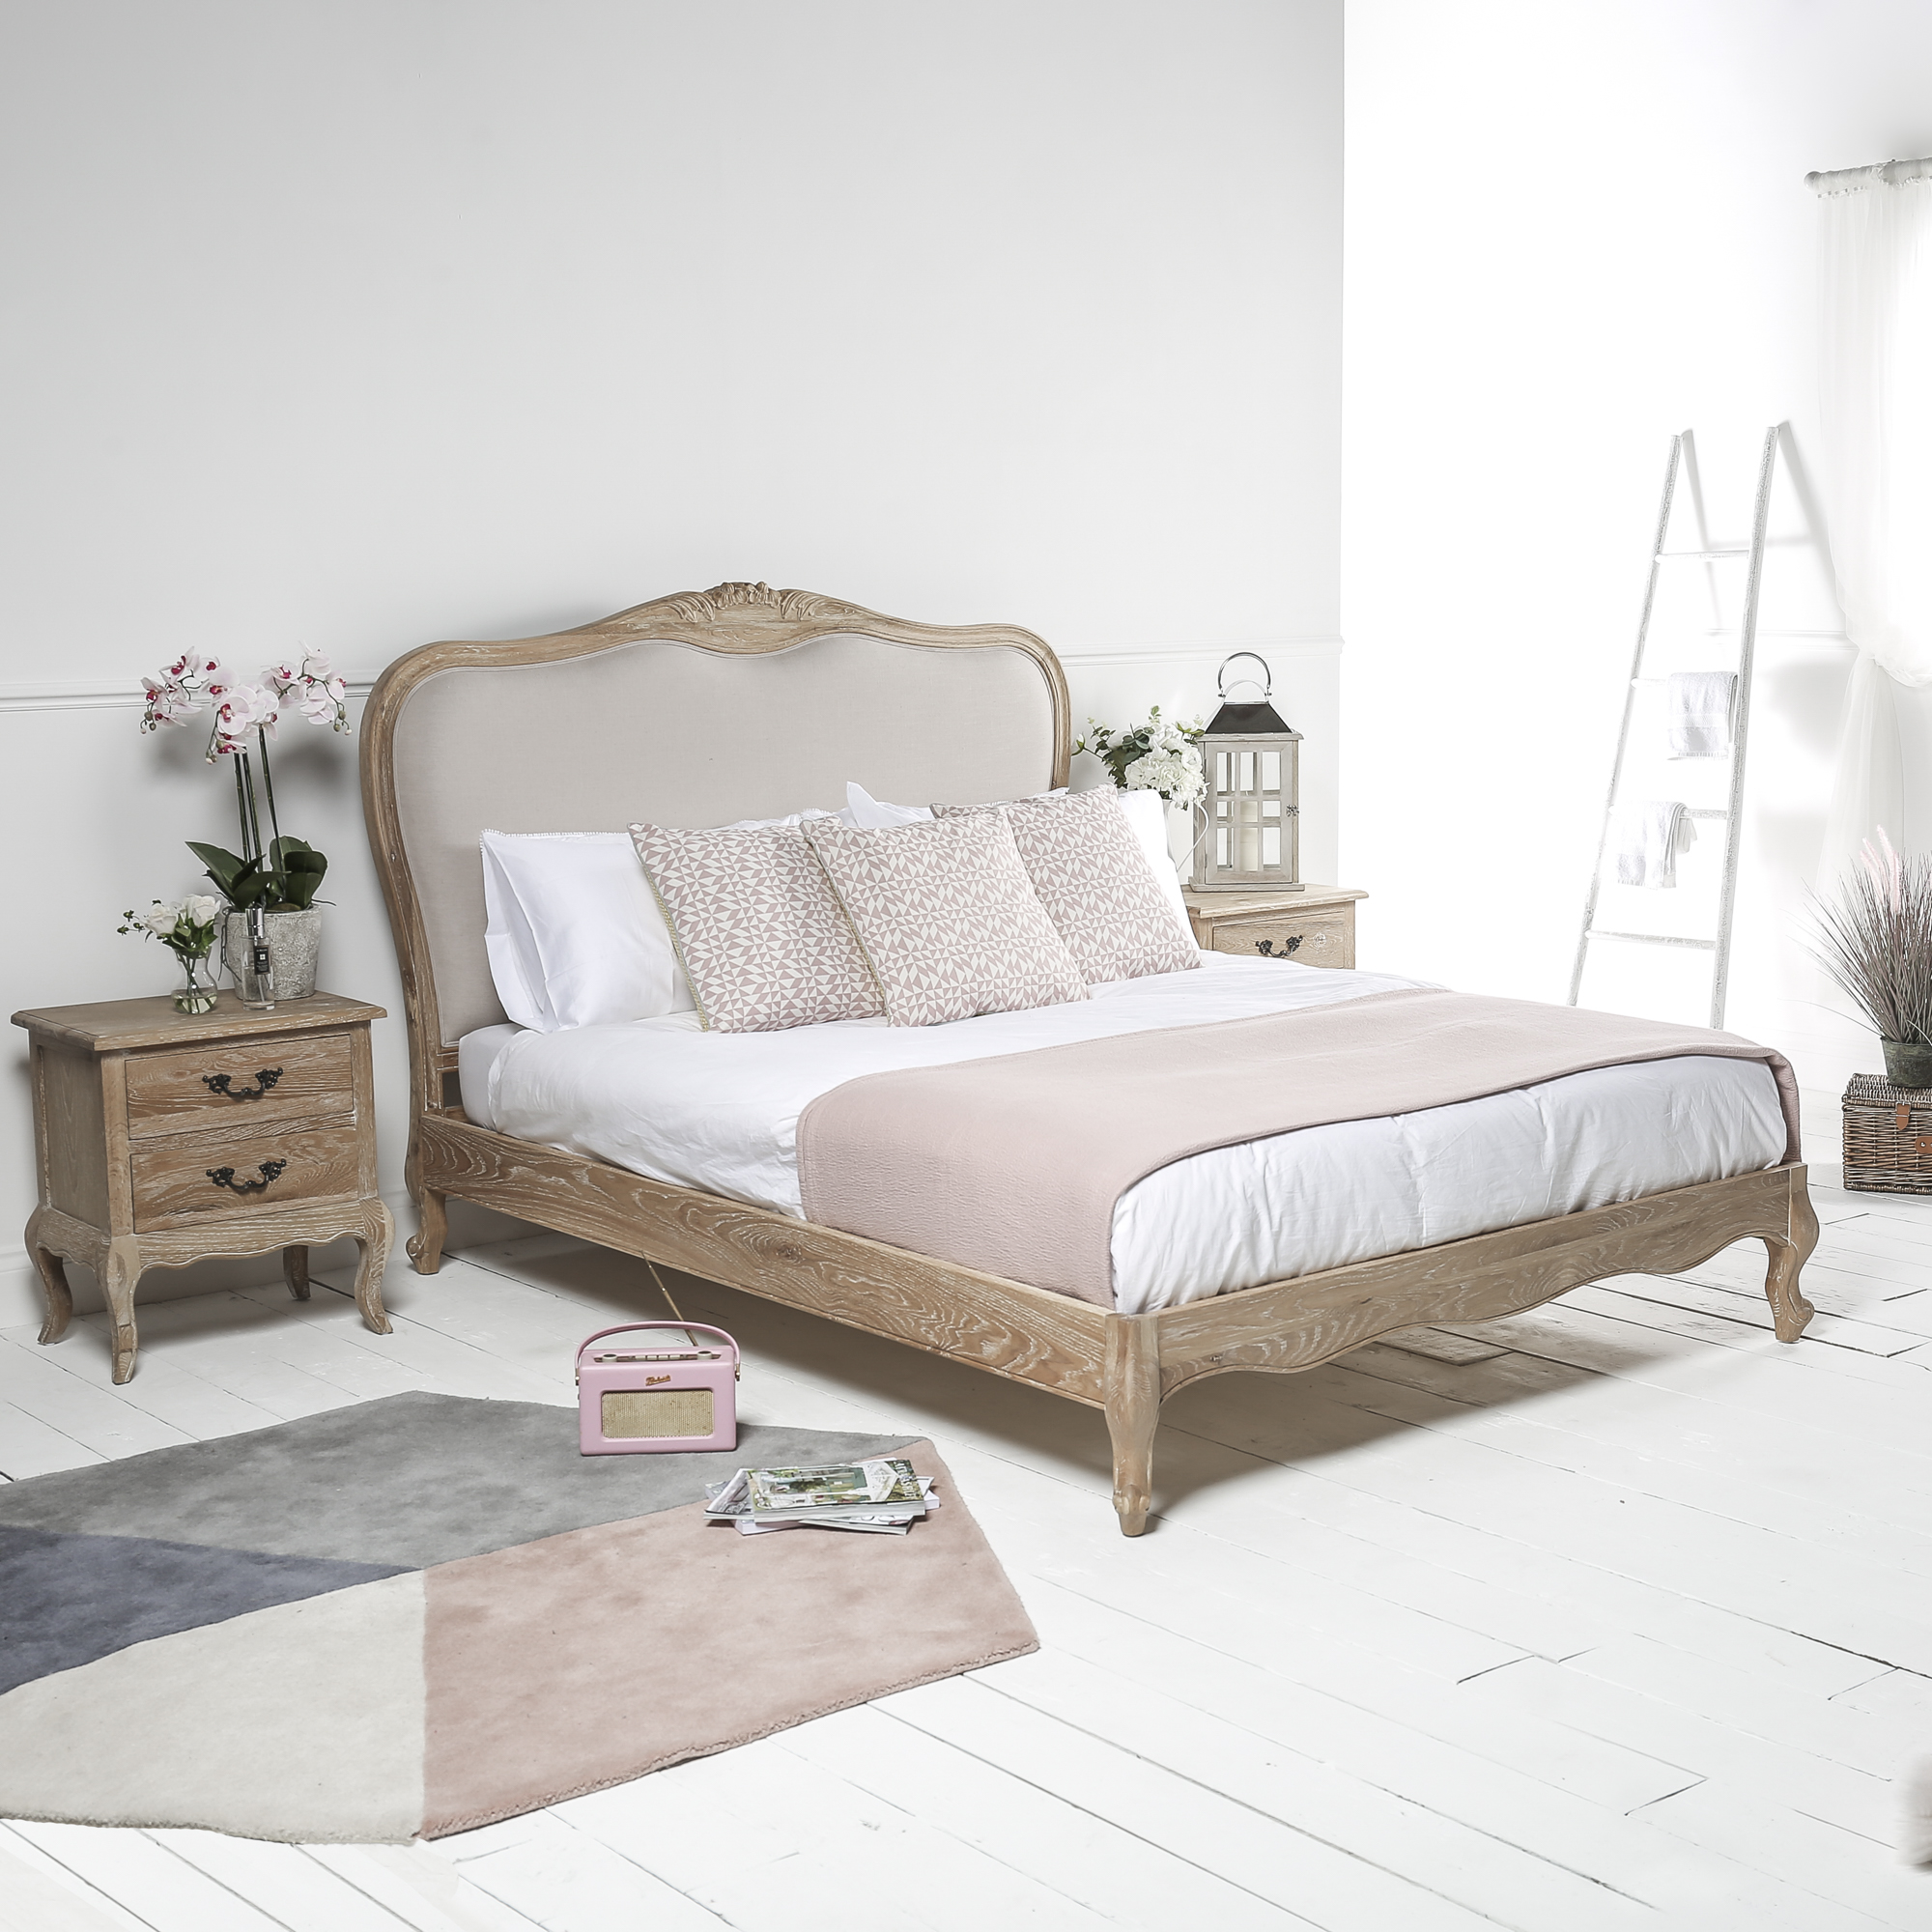 French Weathered Limed Oak Upholstered Low Foot Board Bed – King Size Bed